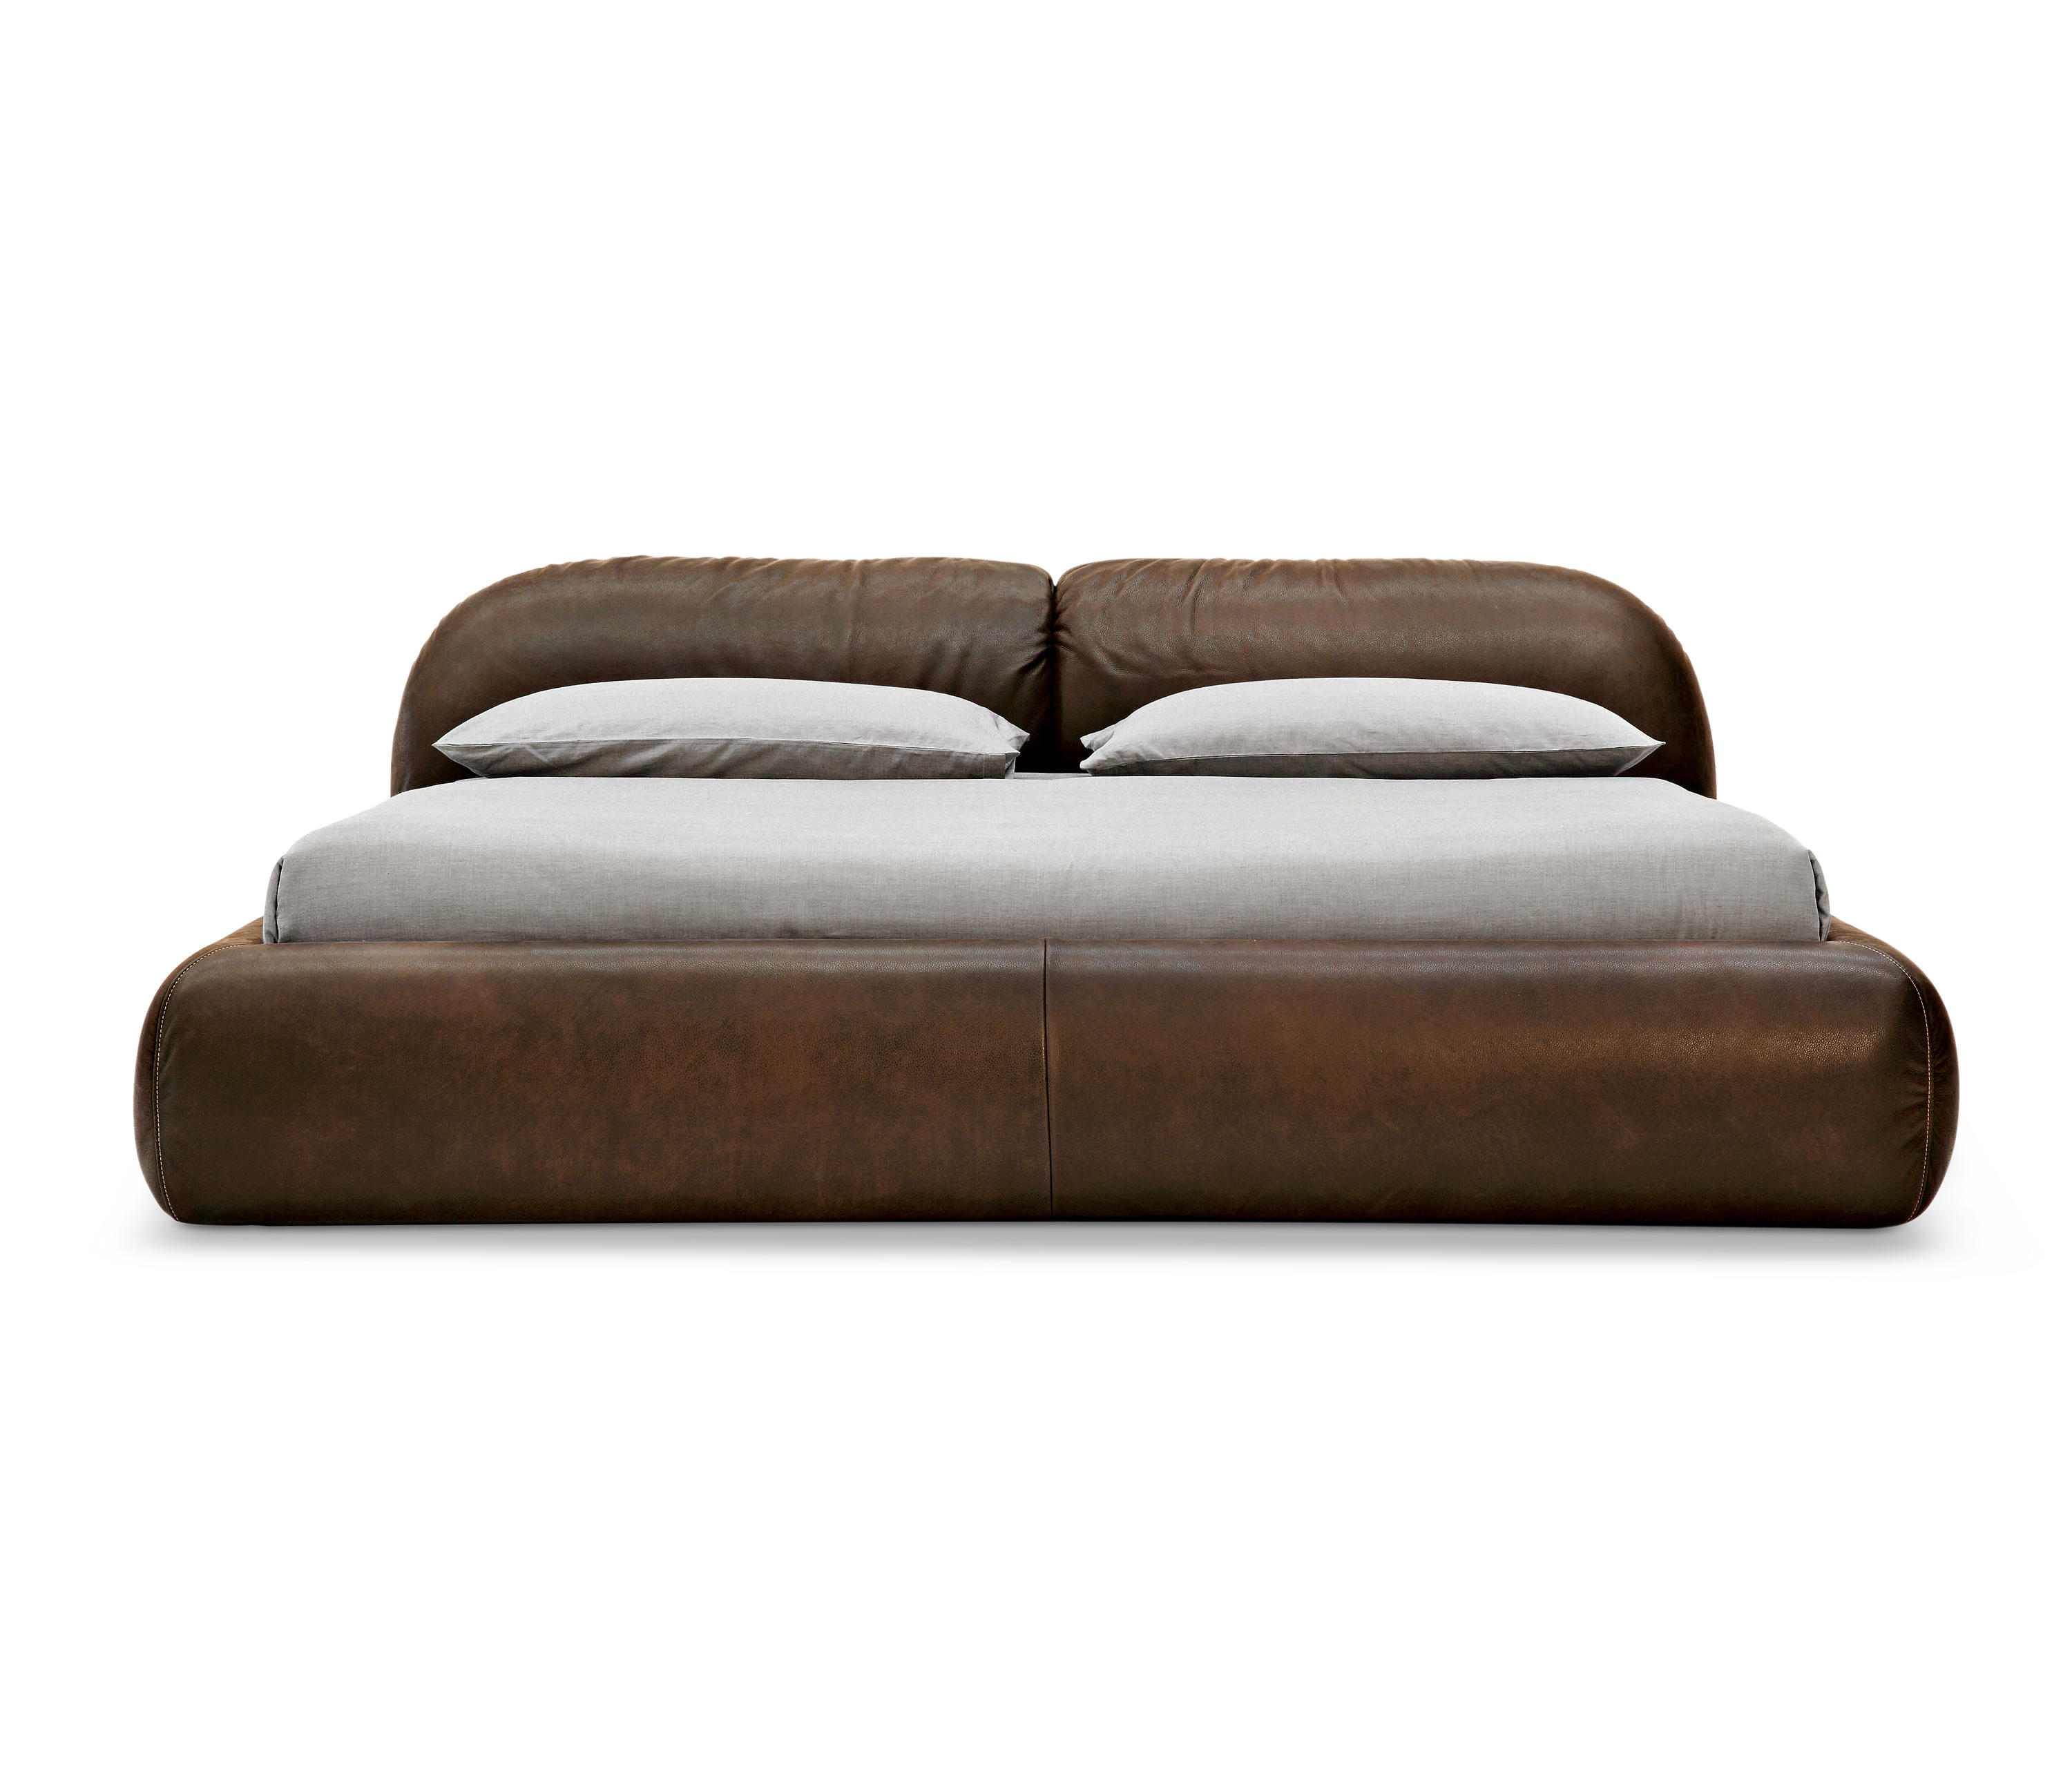 PIUMOTTO BED - Betten von Busnelli | Architonic